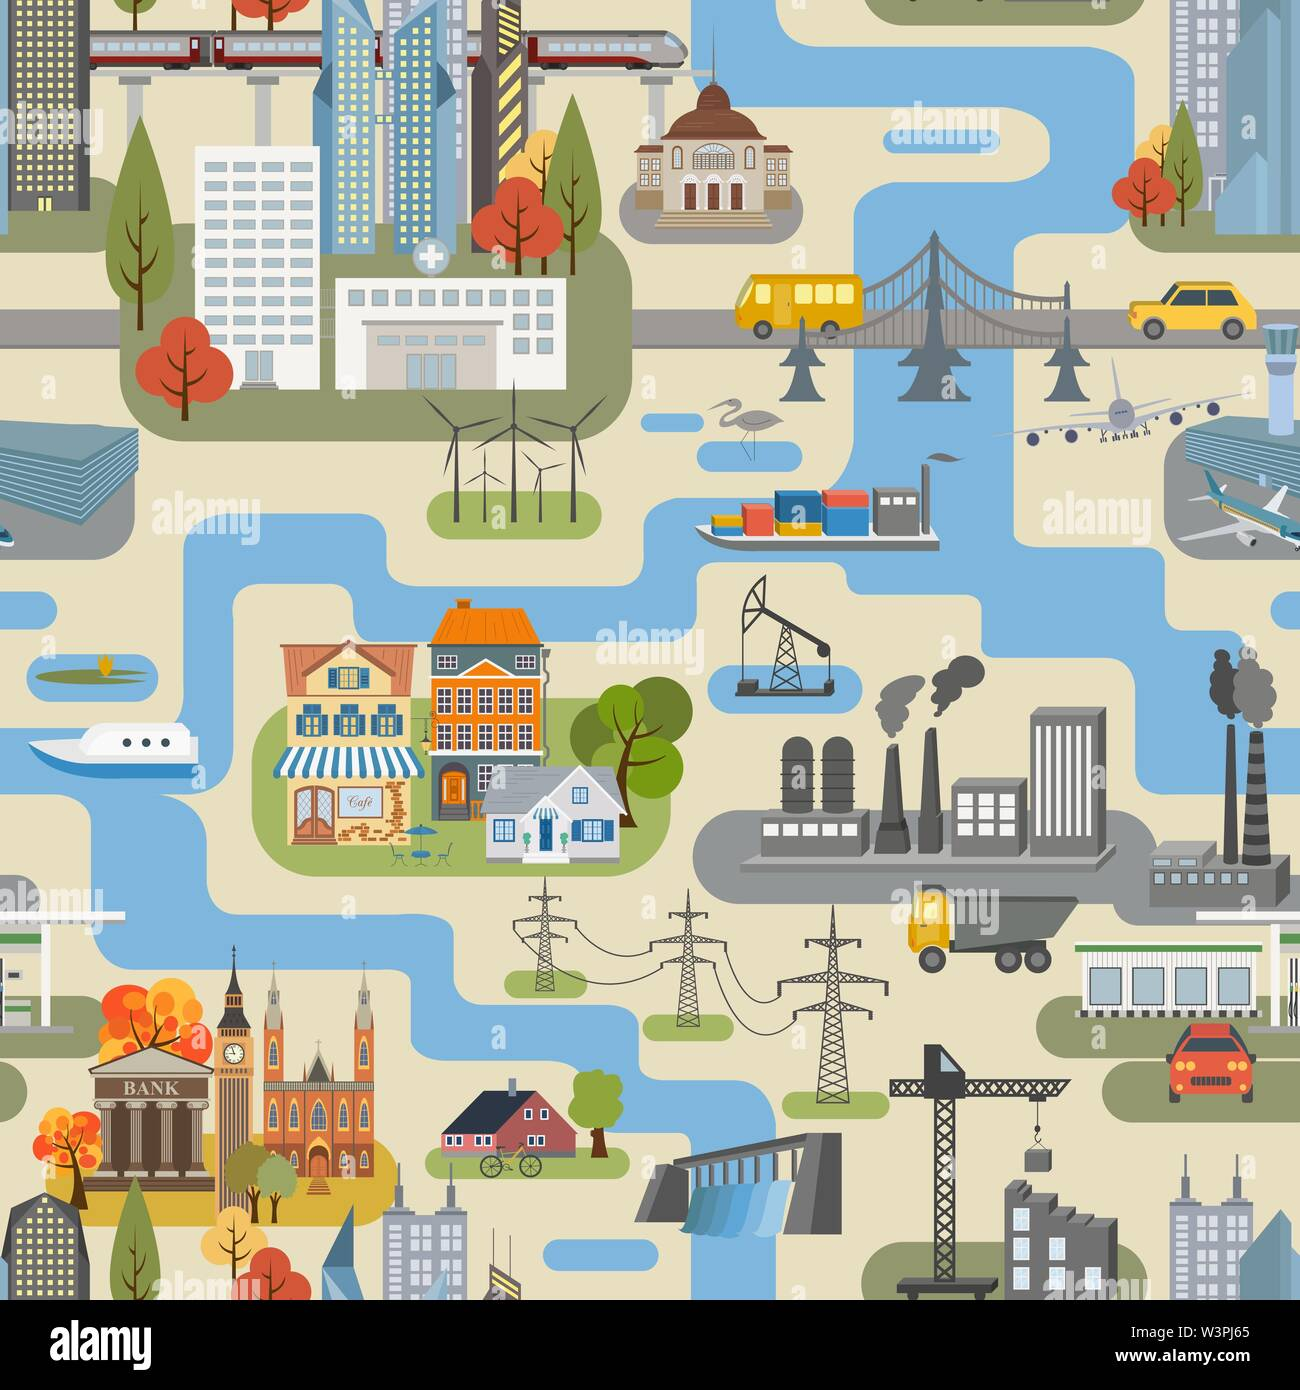 Great city map creator.Seamless pattern map. Houses ... on world map outline, map marker, map scale, map of africa, map making, map of c, map of germany, map background, map name, map world, map of us national parks, map of westeros, map north, site map creator, map title, map layers, map star, map pushpin icon, map country, map colors, map of europe and united states, grid map, map illustrator, map projection, map history, map of canada,